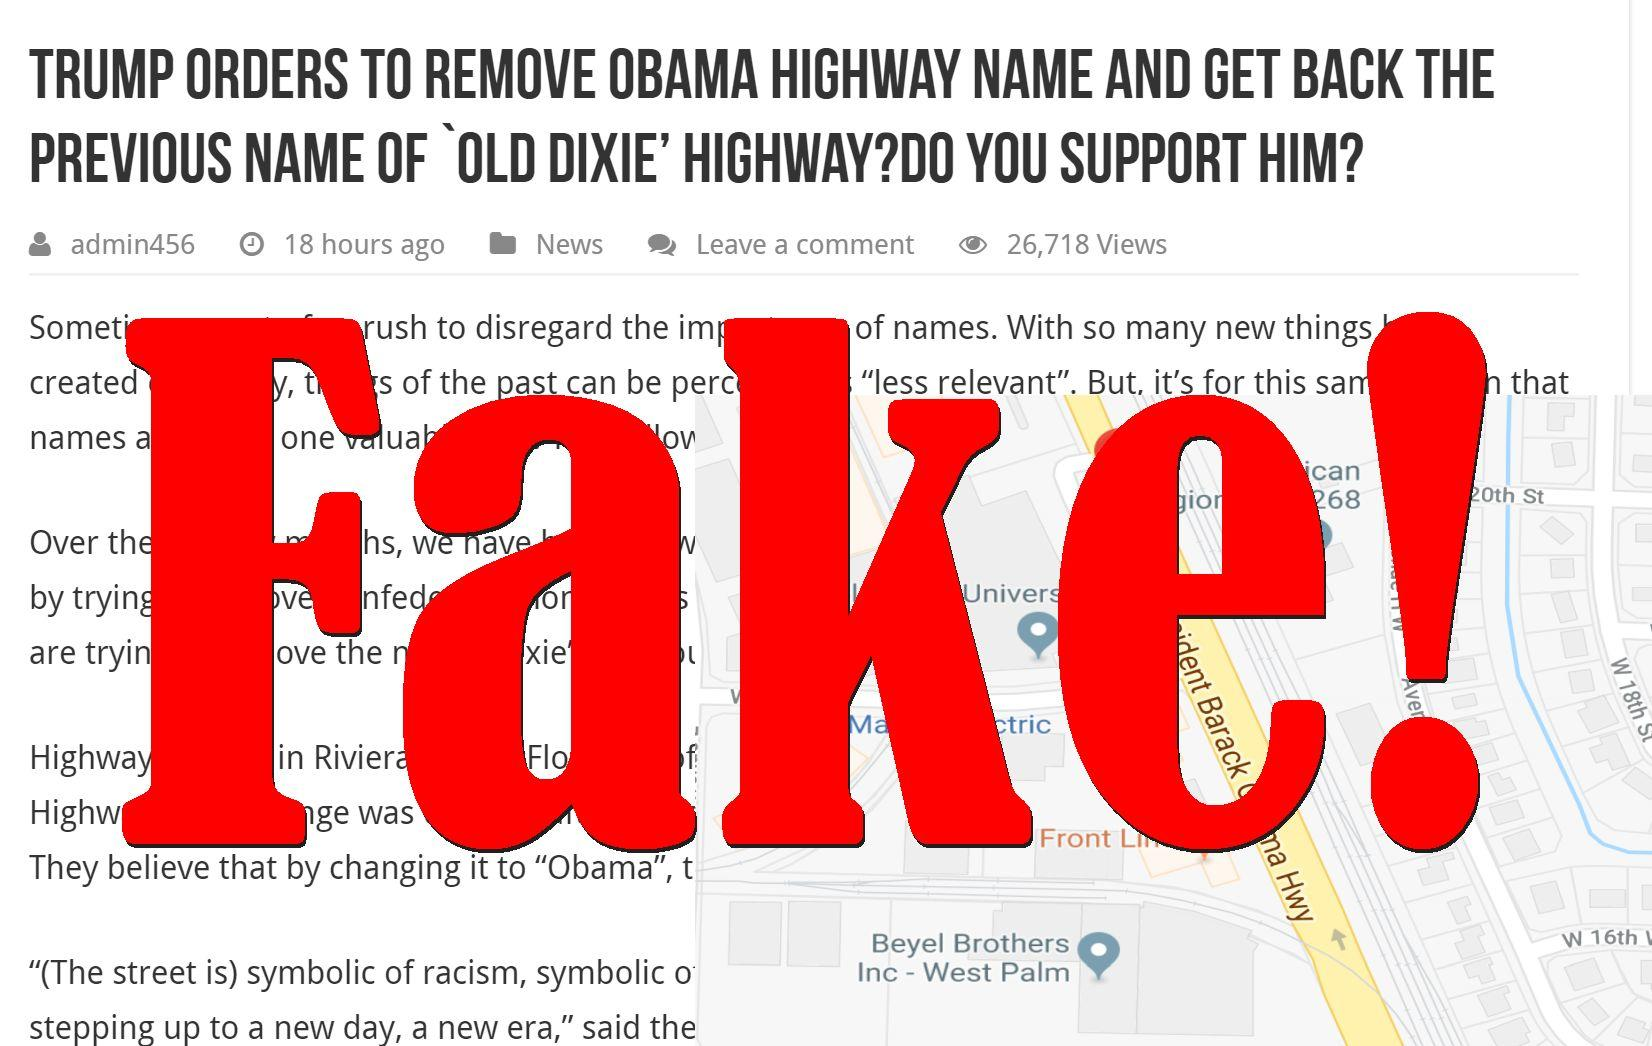 Fake News: Trump Did NOT Order Removal Of Obama Highway Name Back To Previous Name Old Dixie Highway